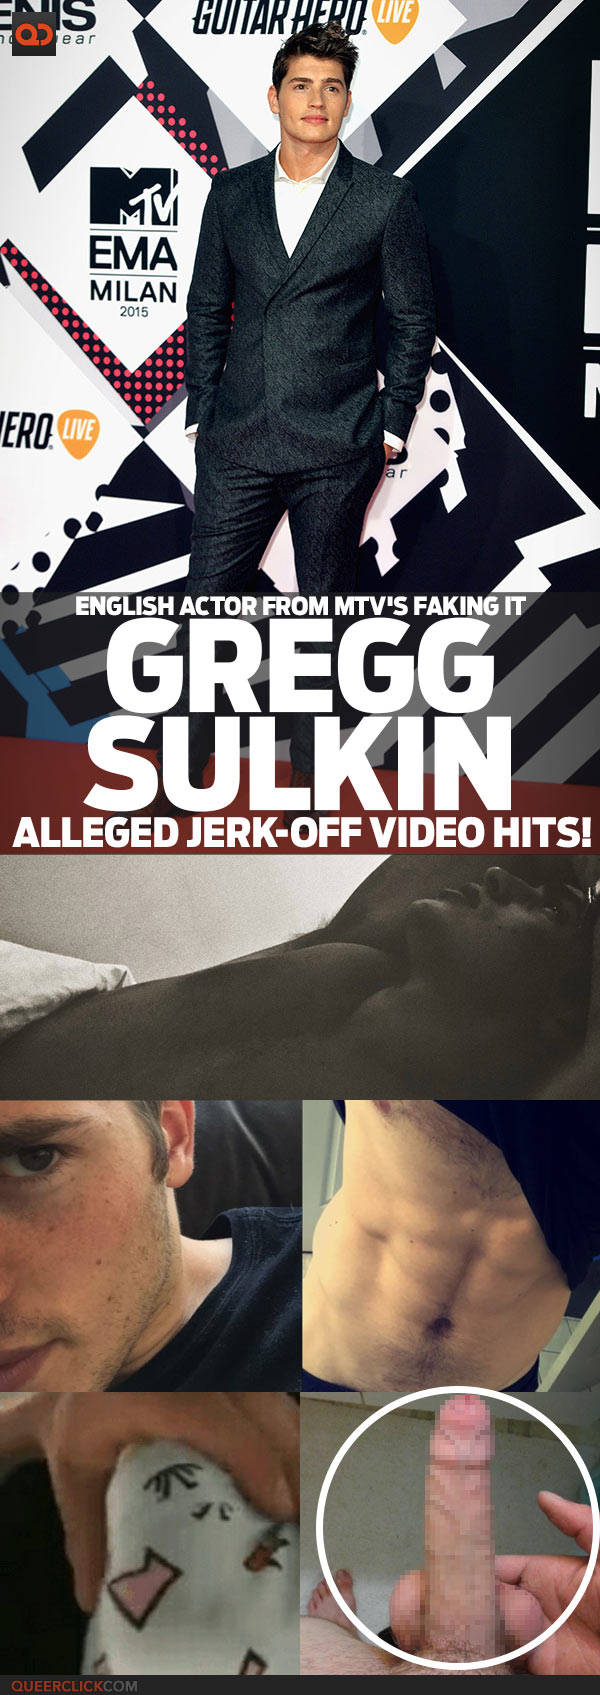 Gregg Sulking, English Actor From MTV's Faking It, Alleged Jerk-Off Video Hits!